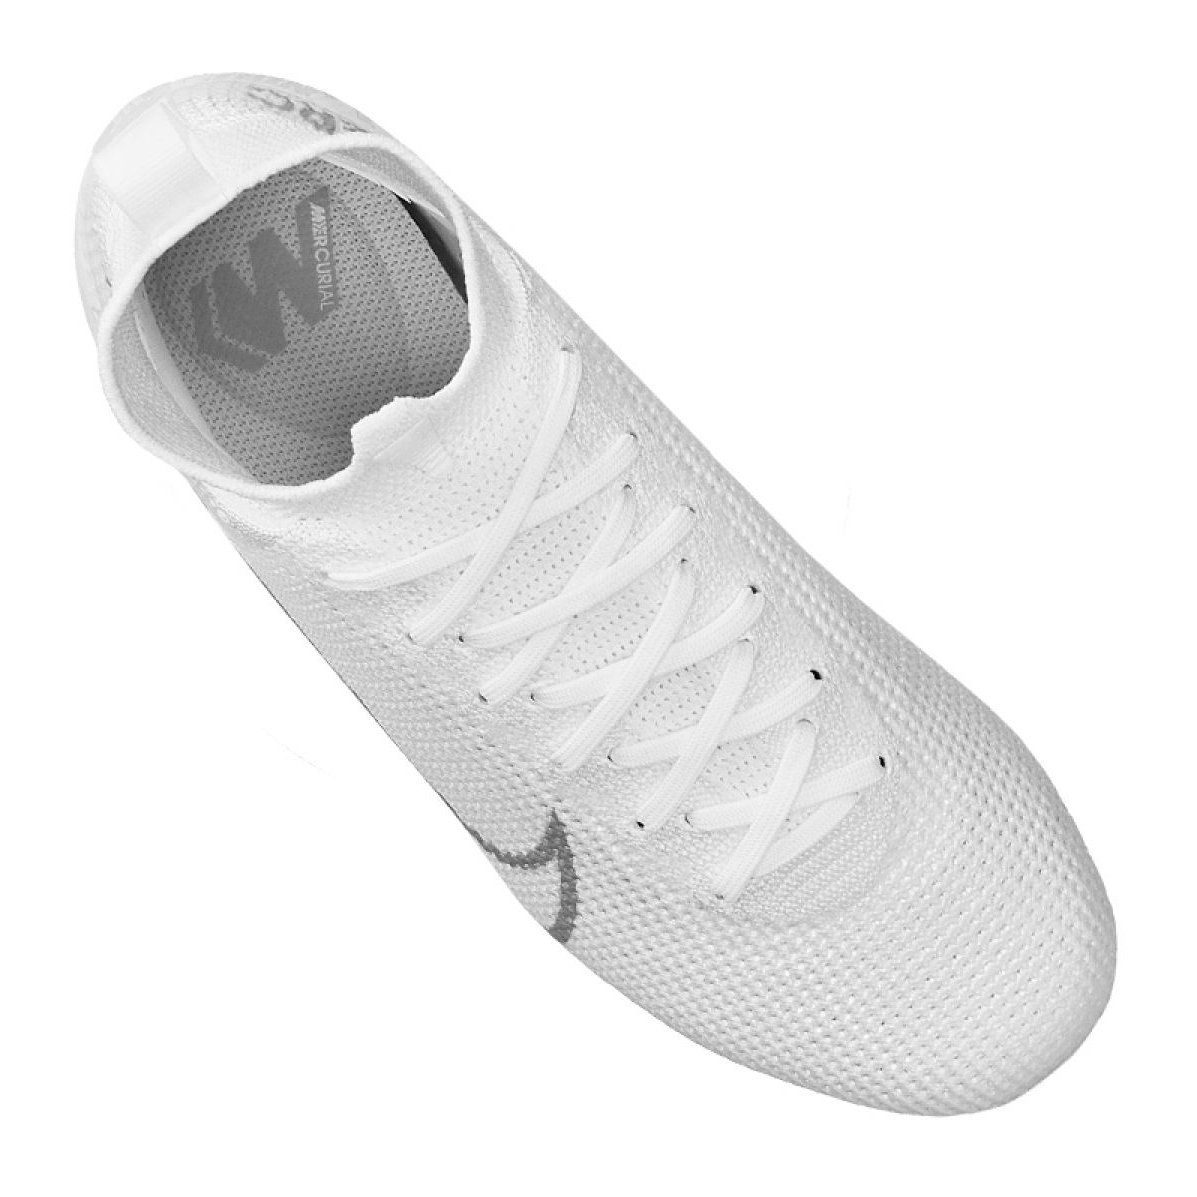 Buty Pilkarskie Nike Superfly 7 Elite Fg Jr At8034 100 Biale Biale Football Shoes Superfly Sprint Shoes